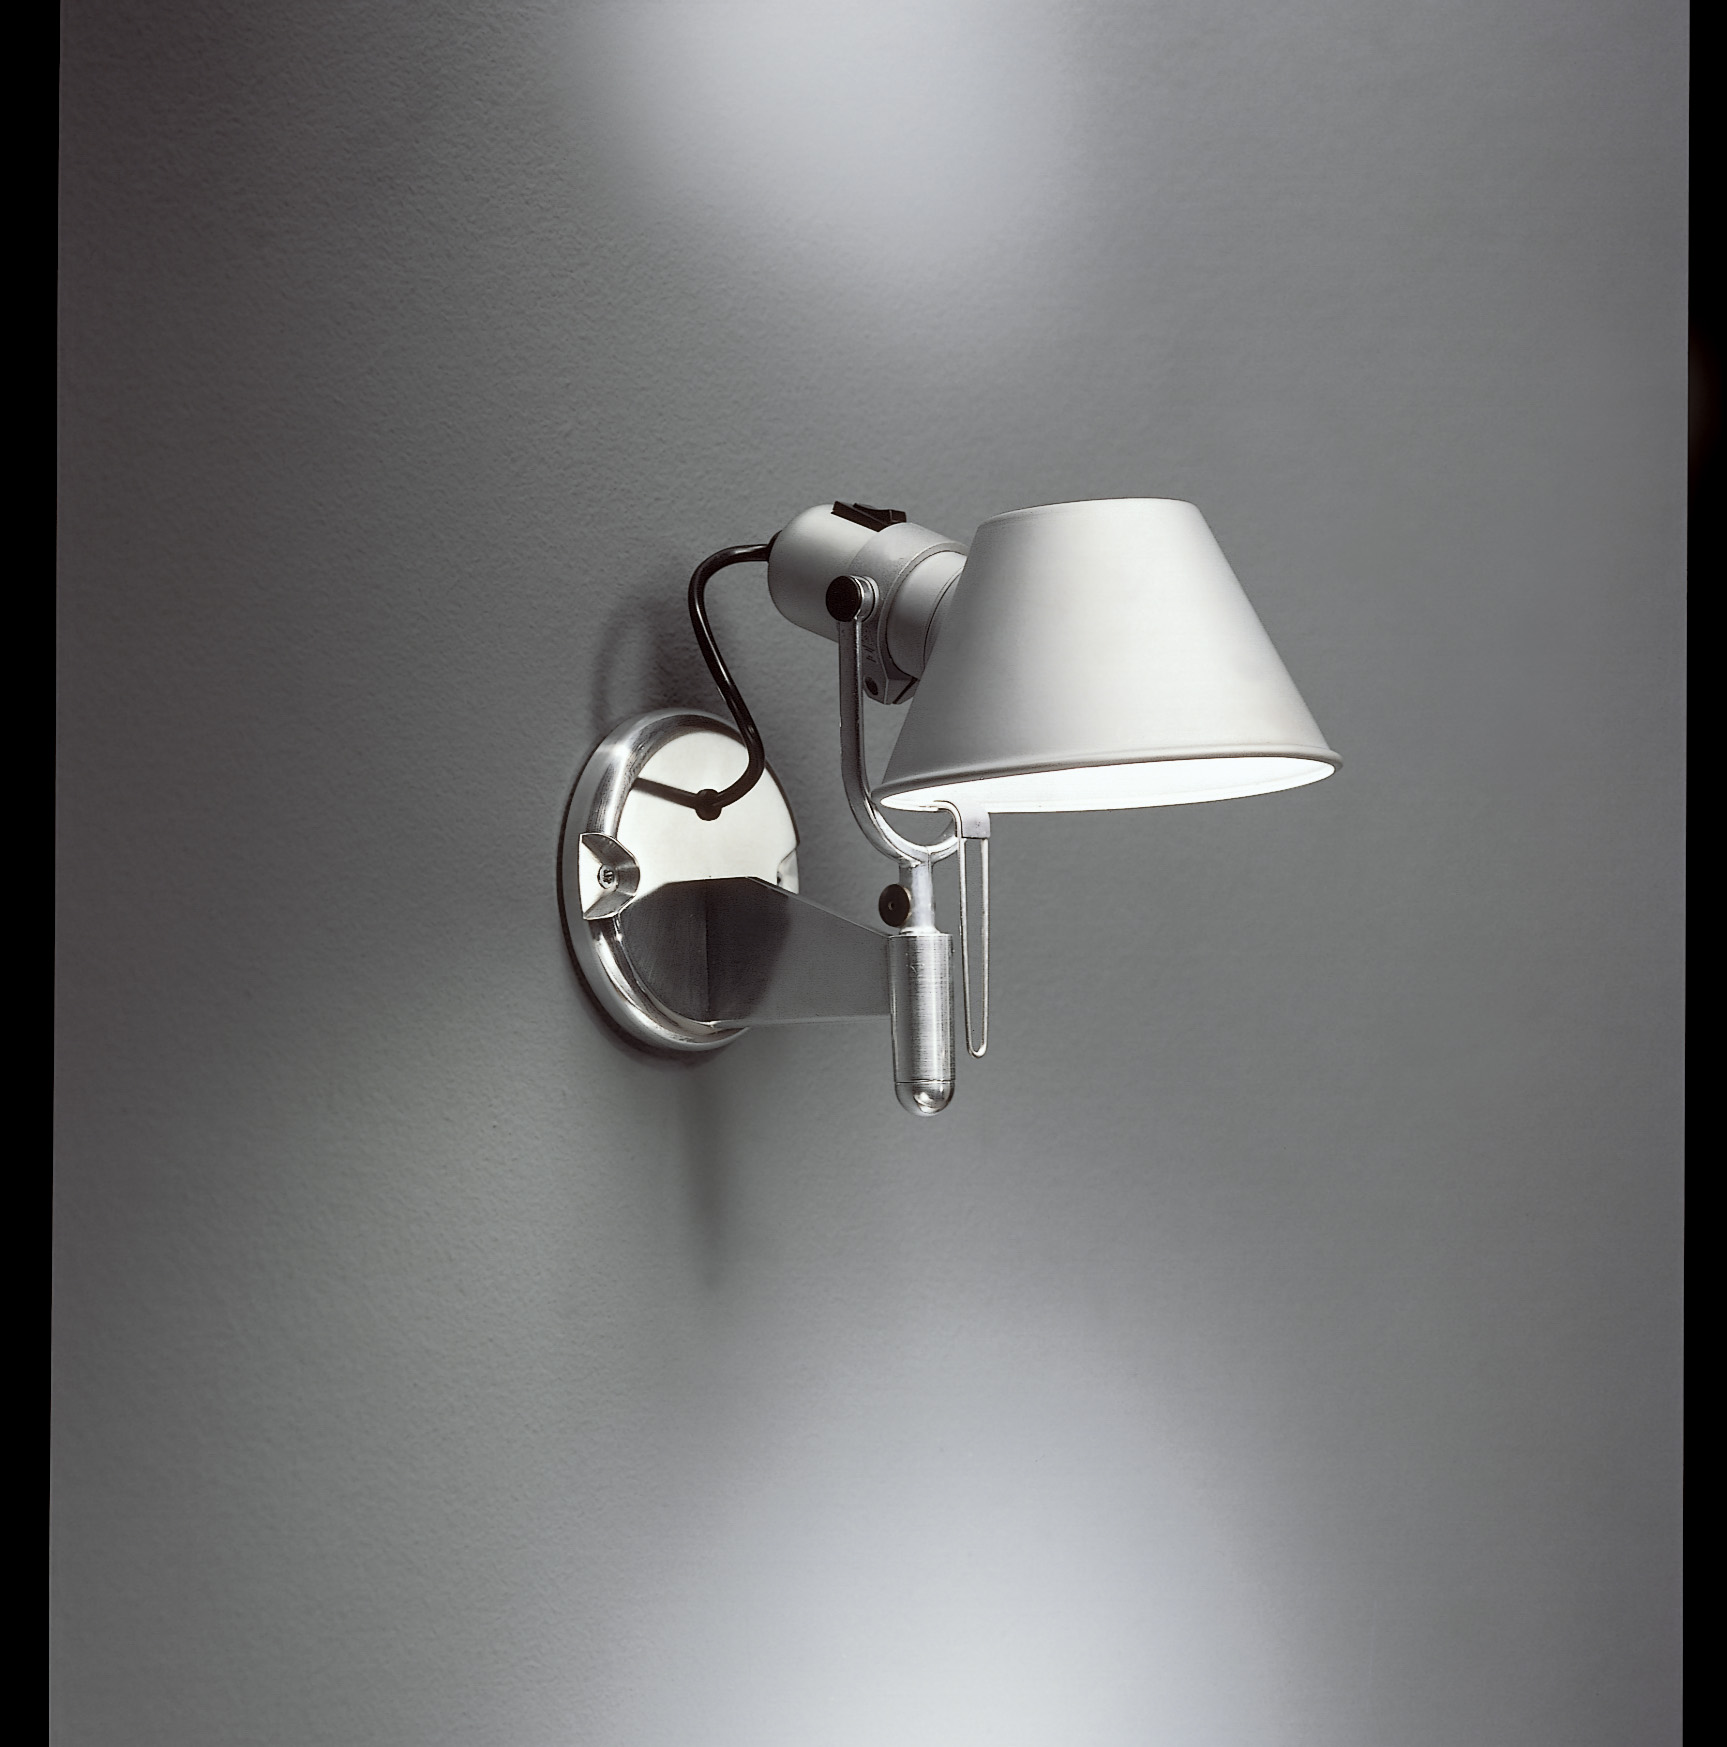 Wall Lamps With On Off Switch : Artemide Tolomeo Faretto, Wall Lamp with On-Off Switch